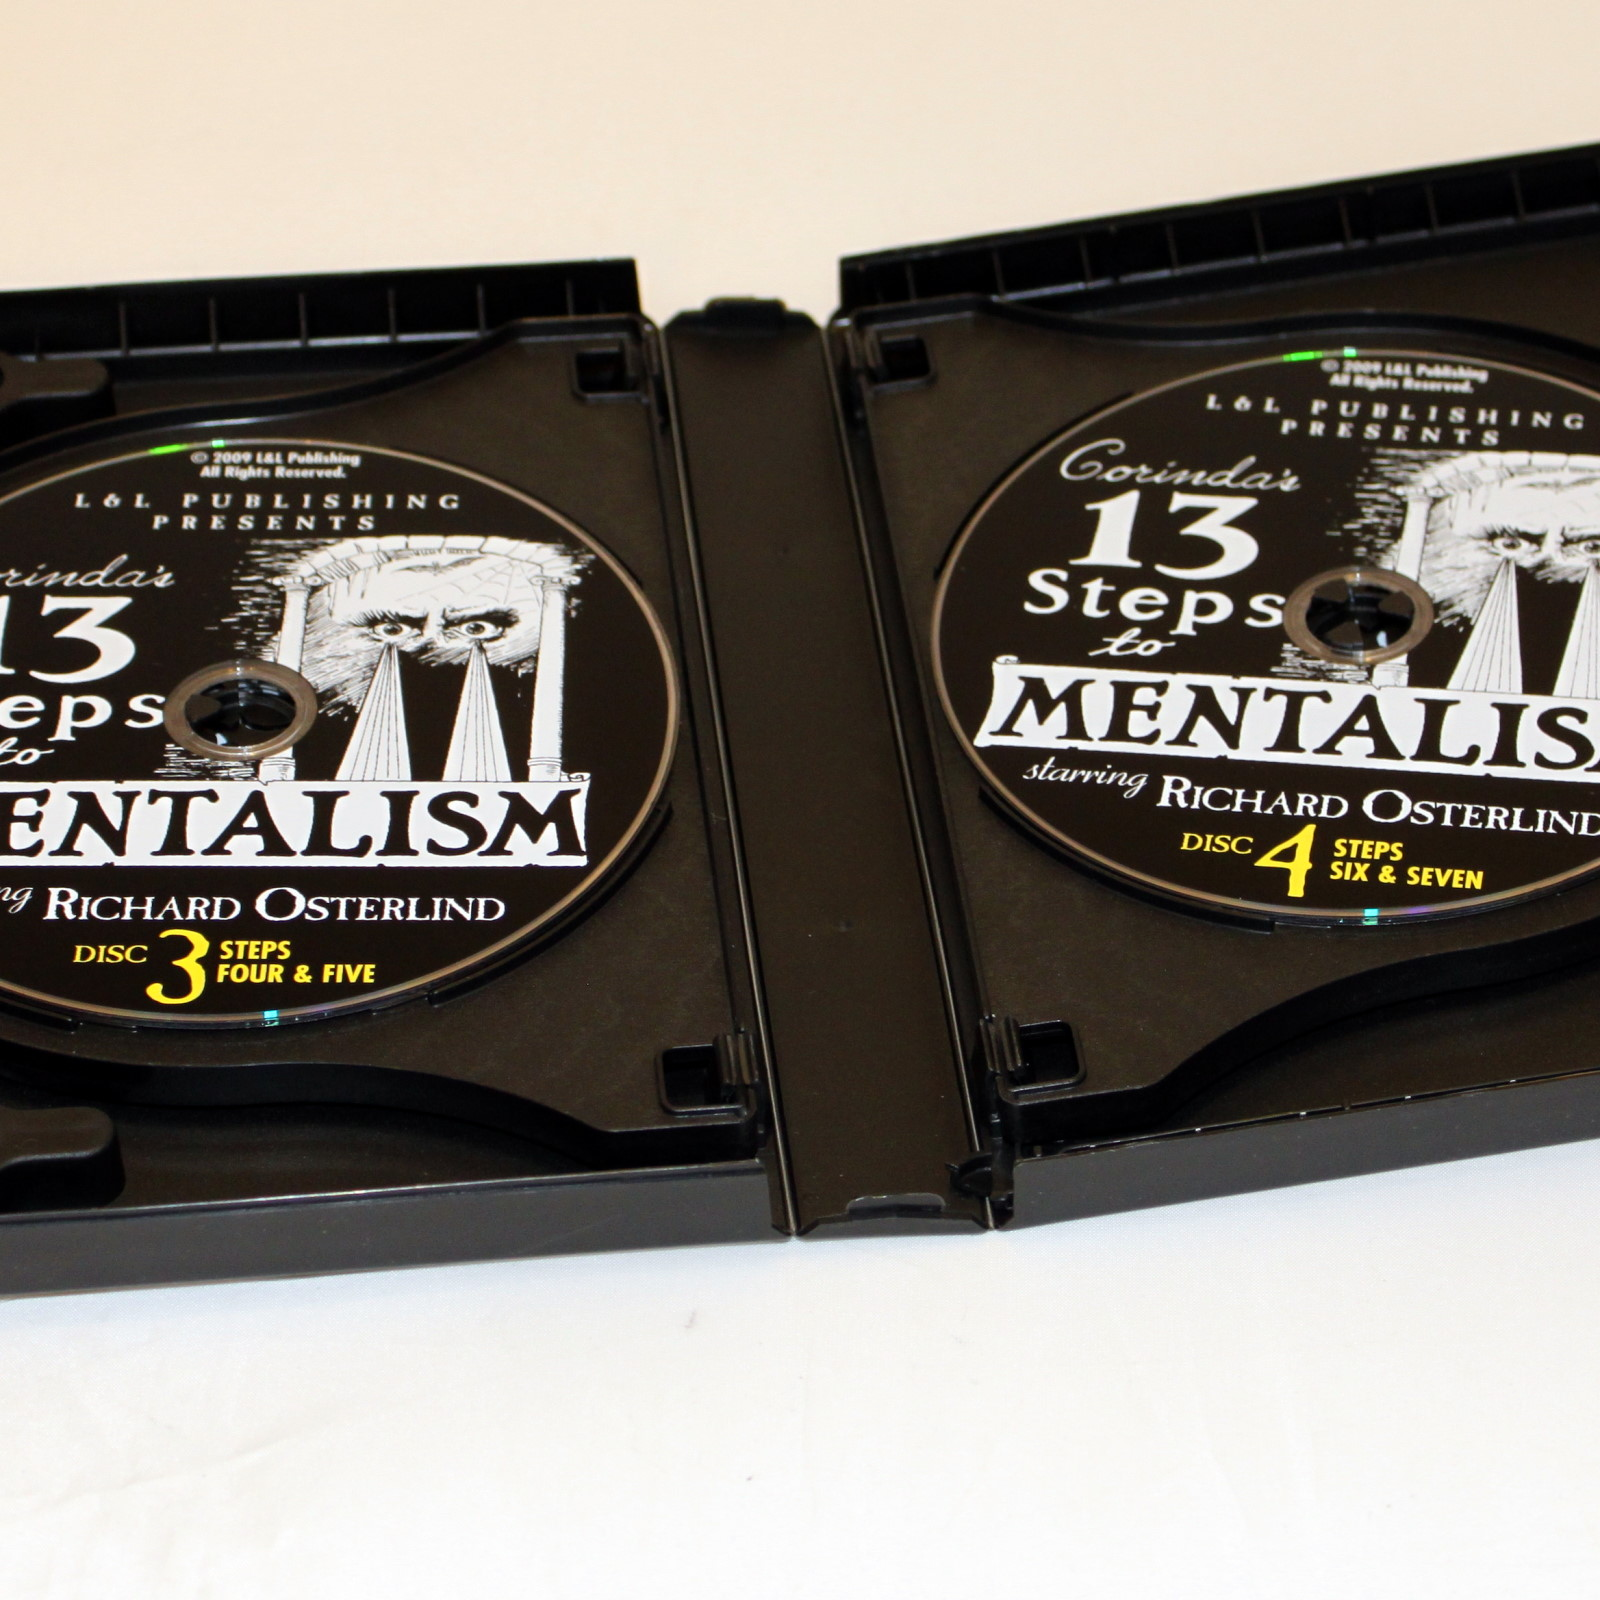 13 Steps to Mentalism DVD by Richard Osterlind